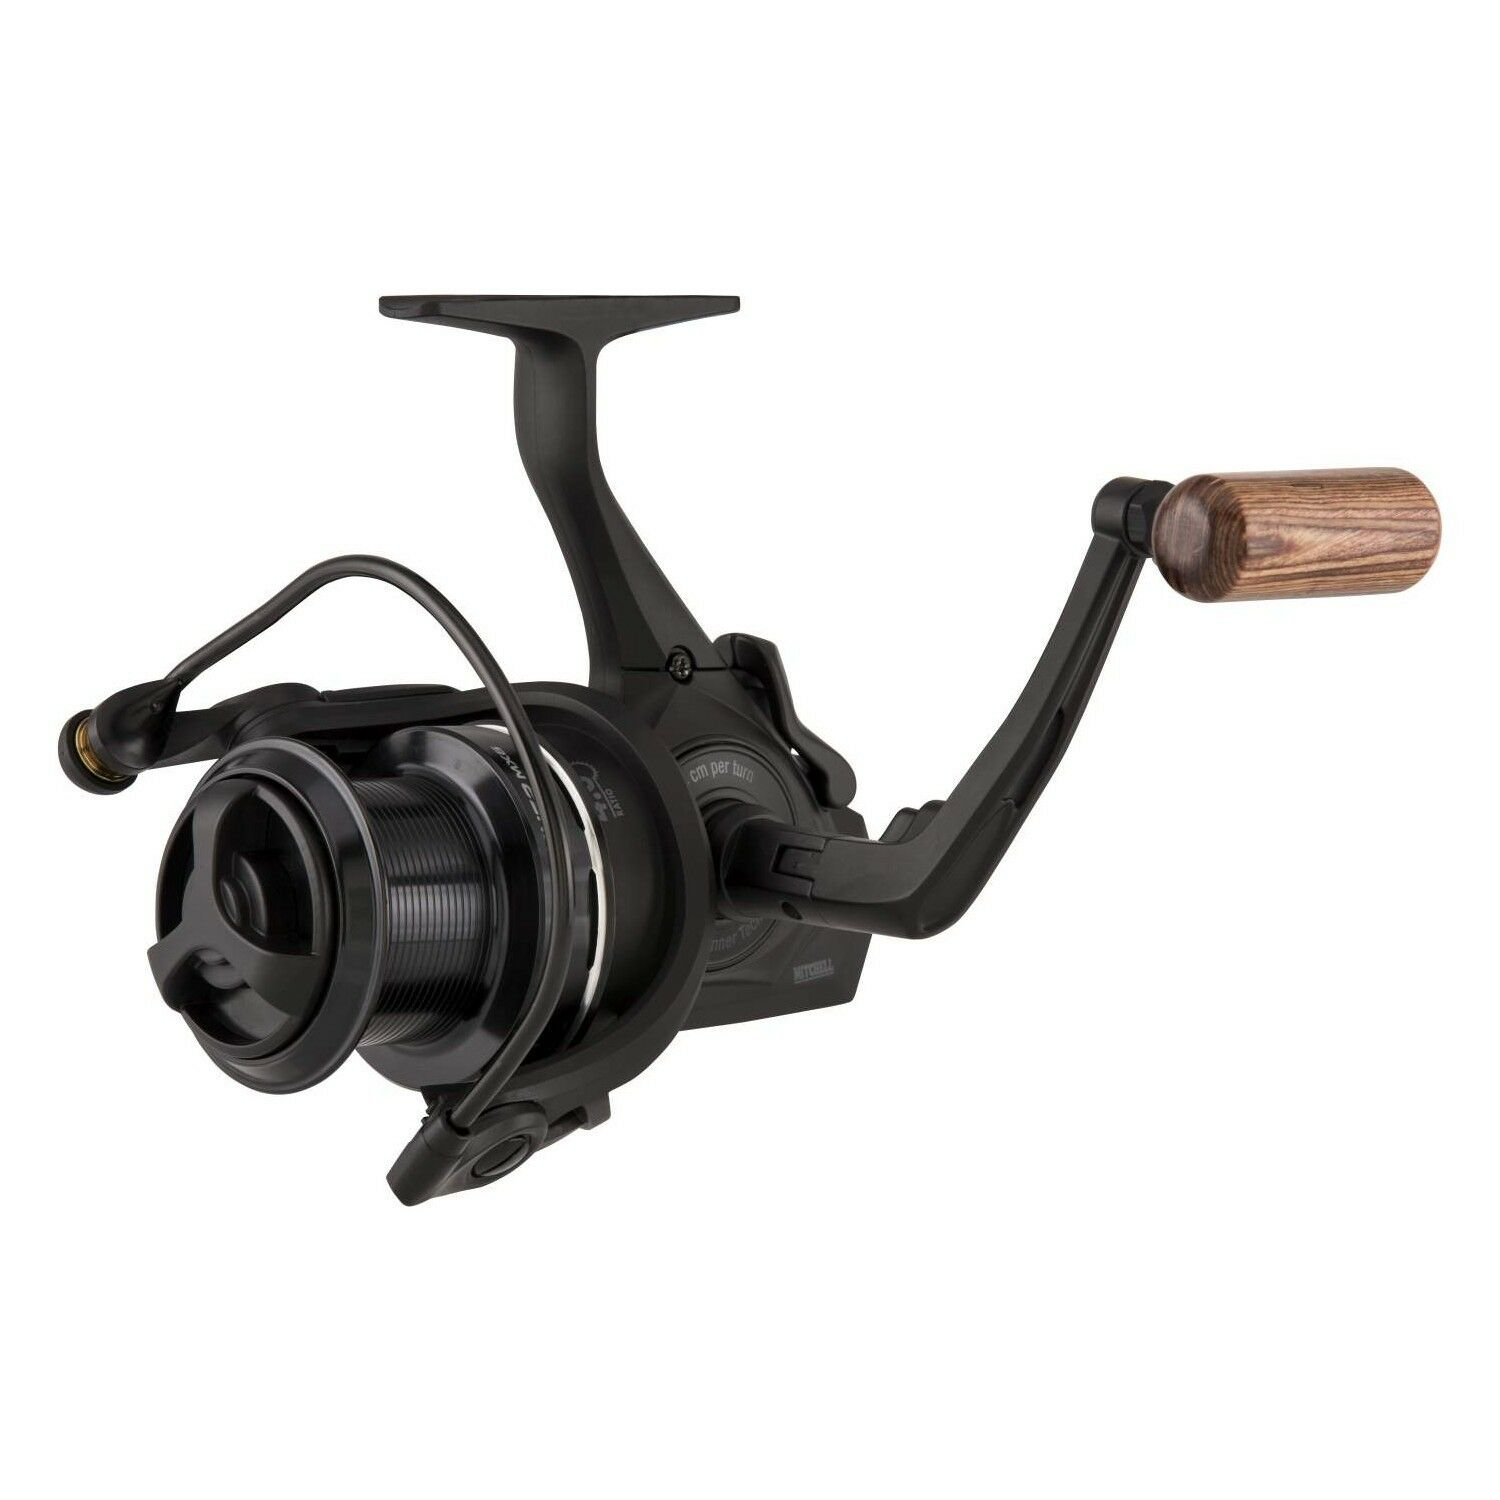 Mitchell NEW MX6 FULL RUNNER Free Reel Spool Carp Fishing Reel Free - All Größes 0c2f13